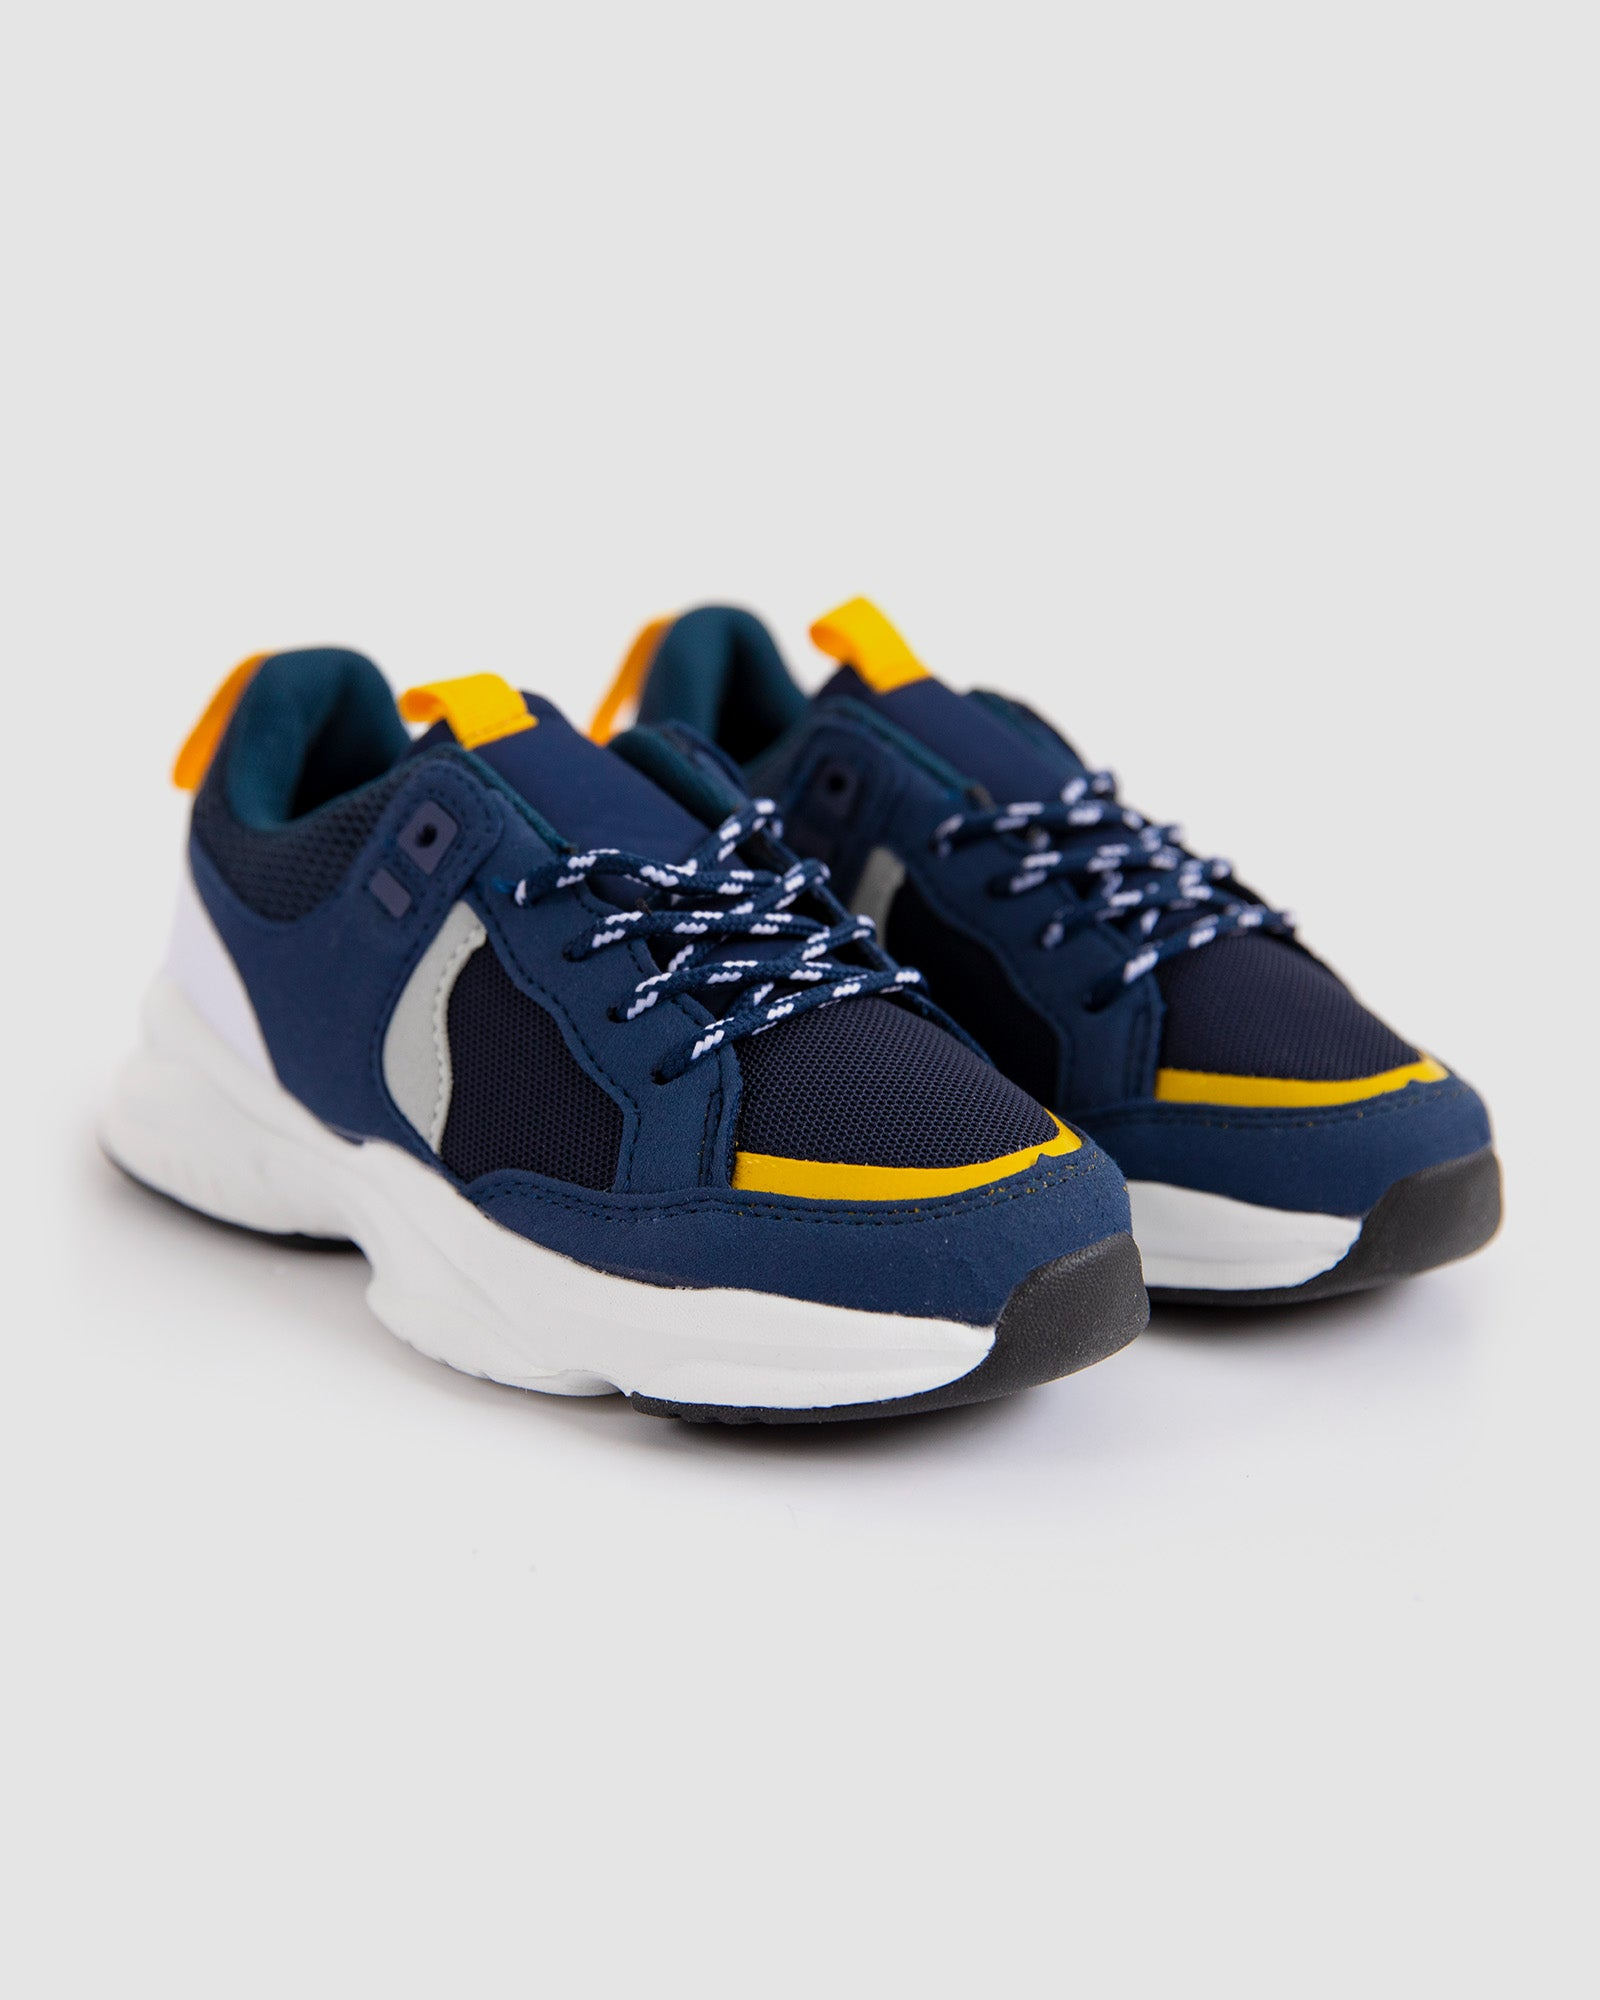 Navy joggers shoes